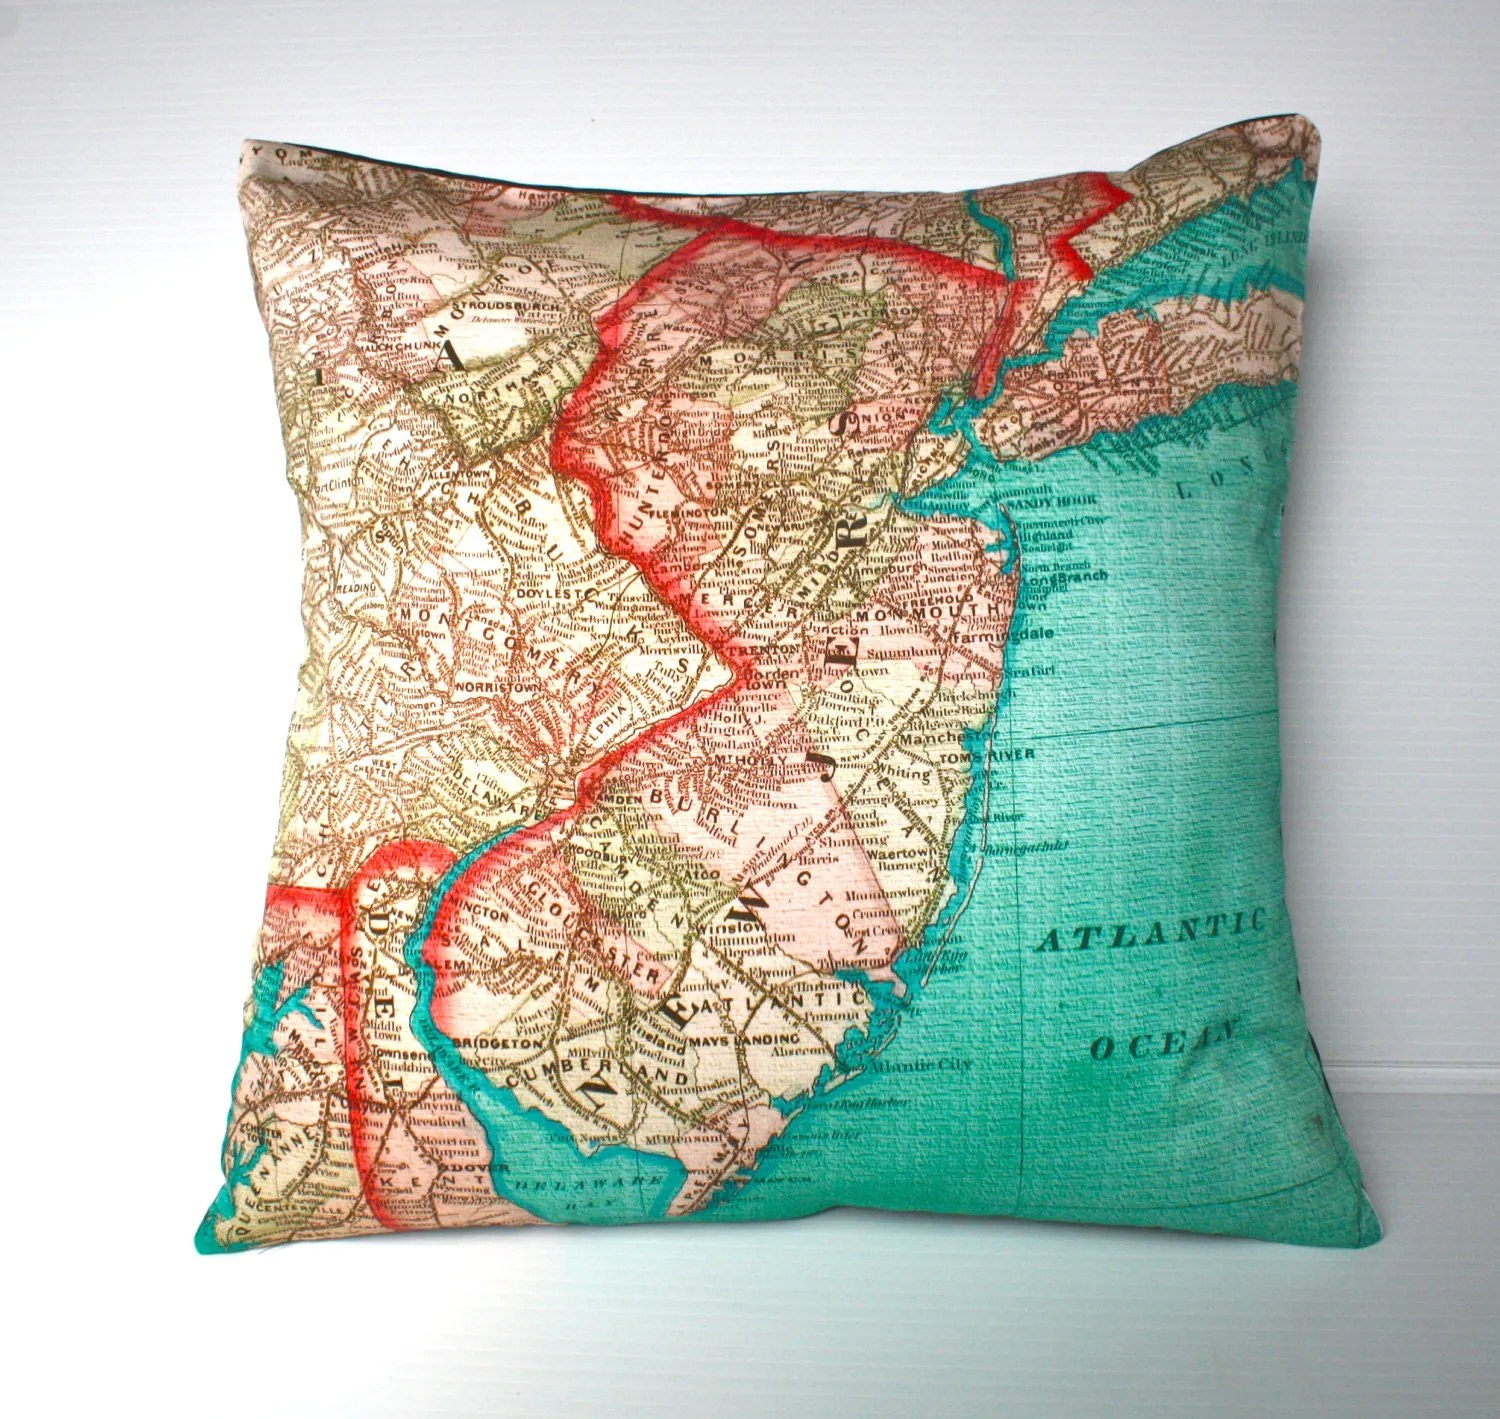 Best Decorative Throw Pillow New Jersey Map Cushion Organic Cotton This Month